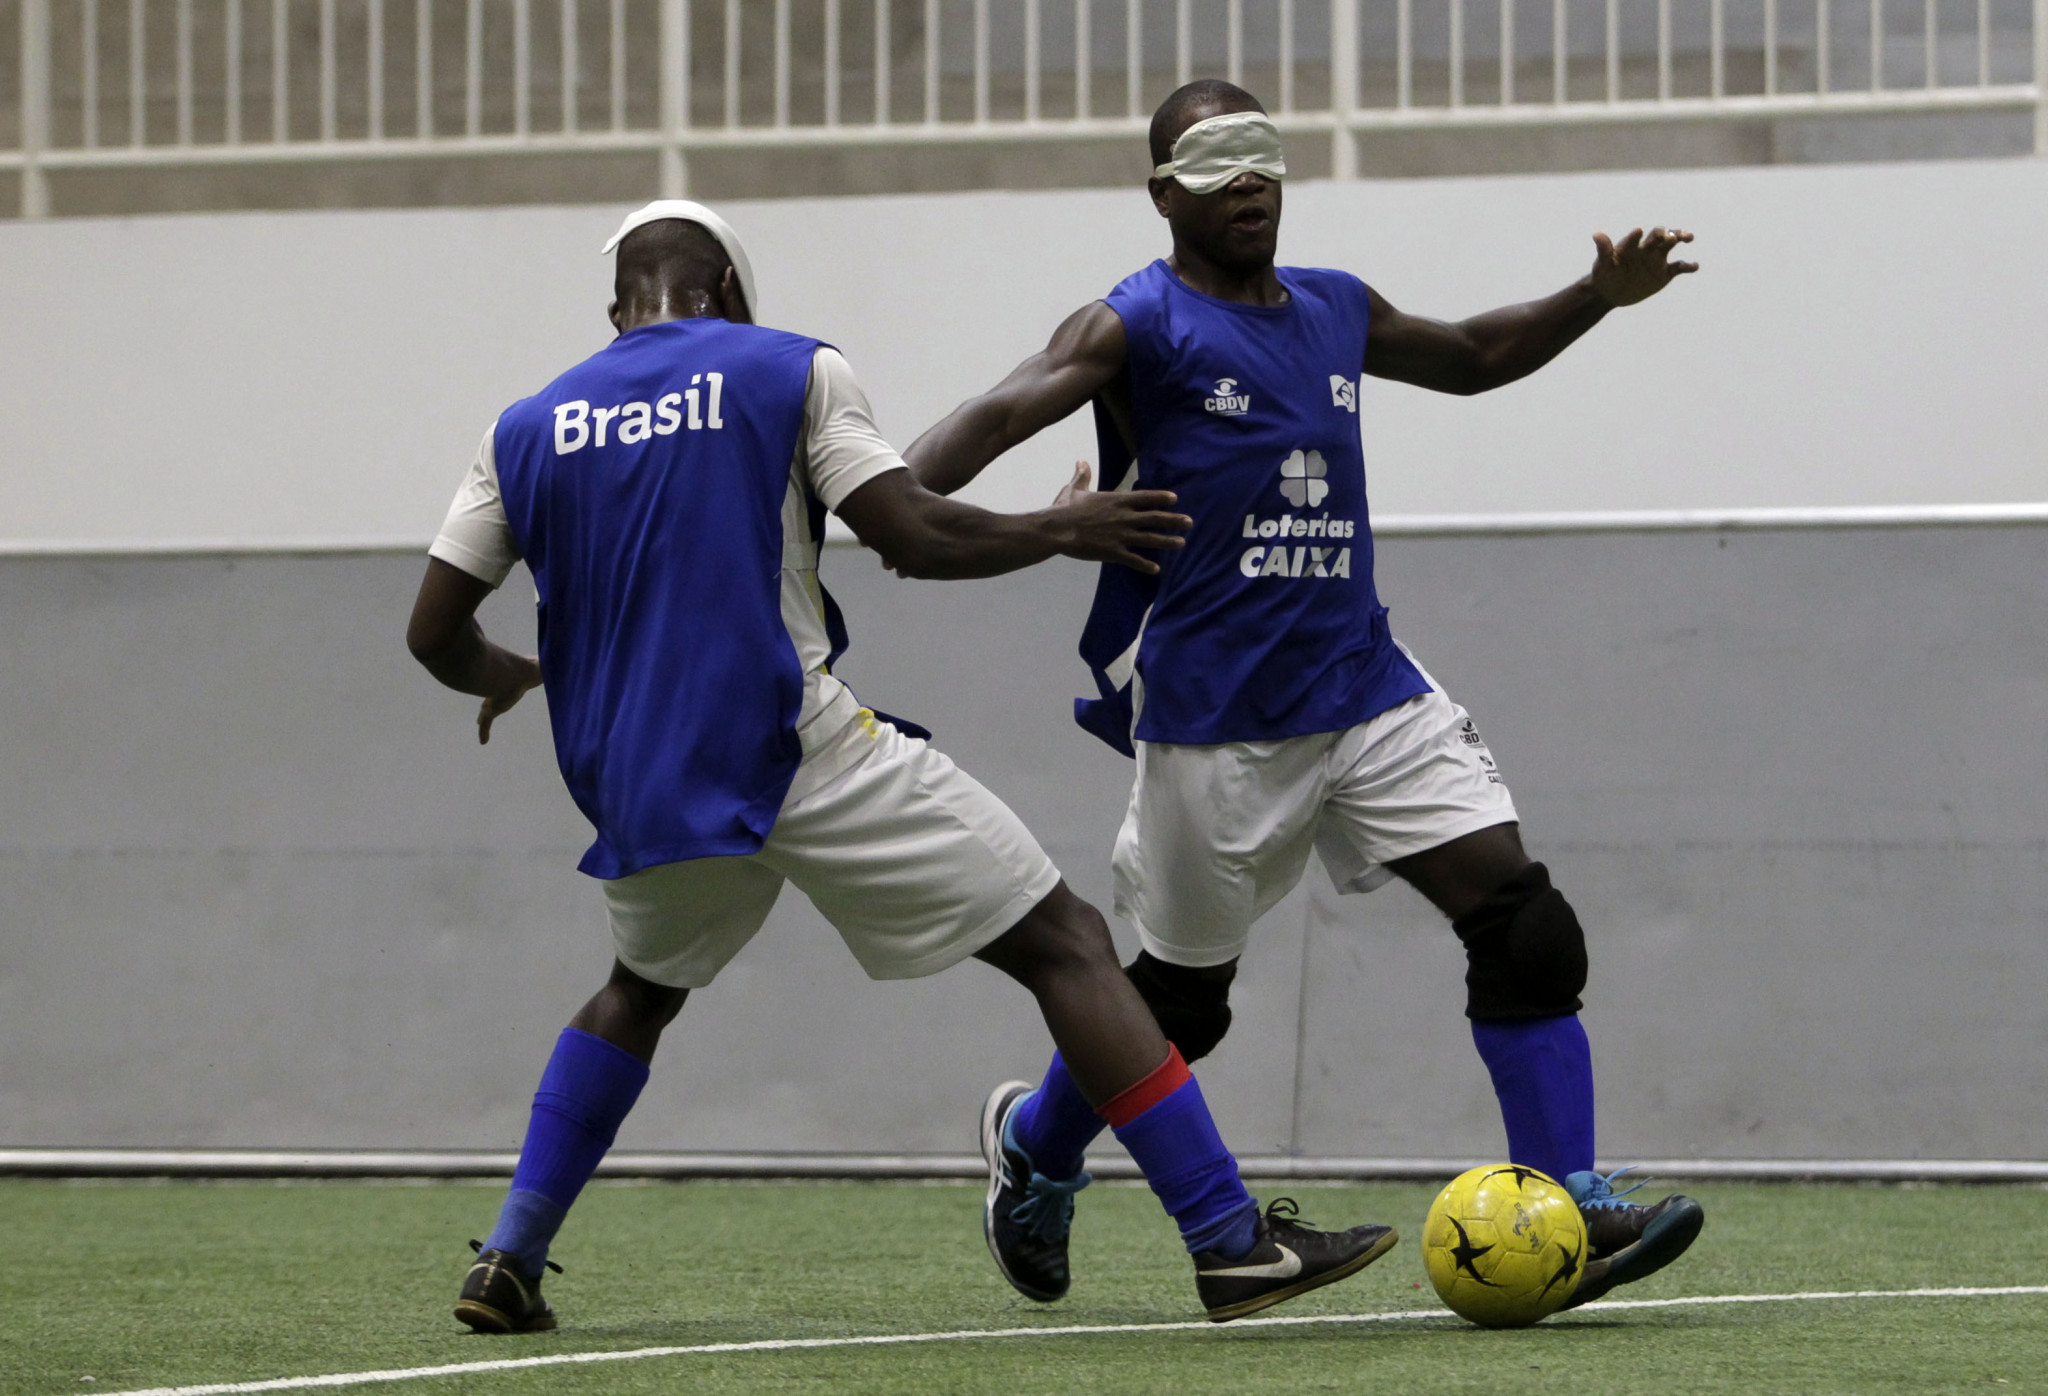 Brazil and Argentina set to renew rivalry at IBSA Blind Football Americas Championships